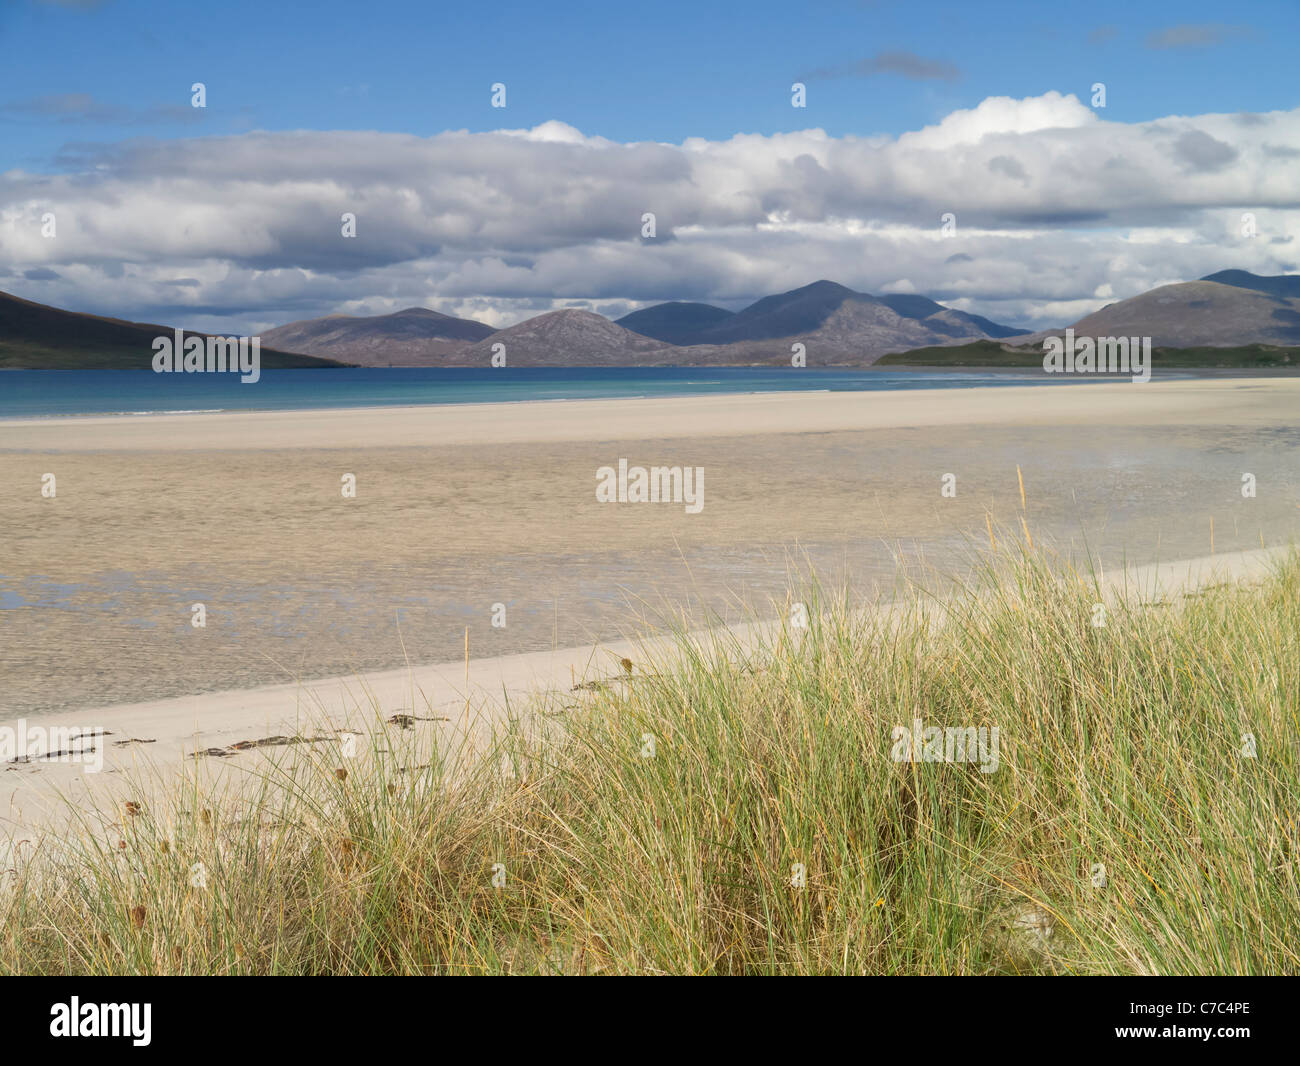 The North Harris hills seen from Seilebost beach on the Isle of Harris in Scotlands Outer Hebrides - Stock Image